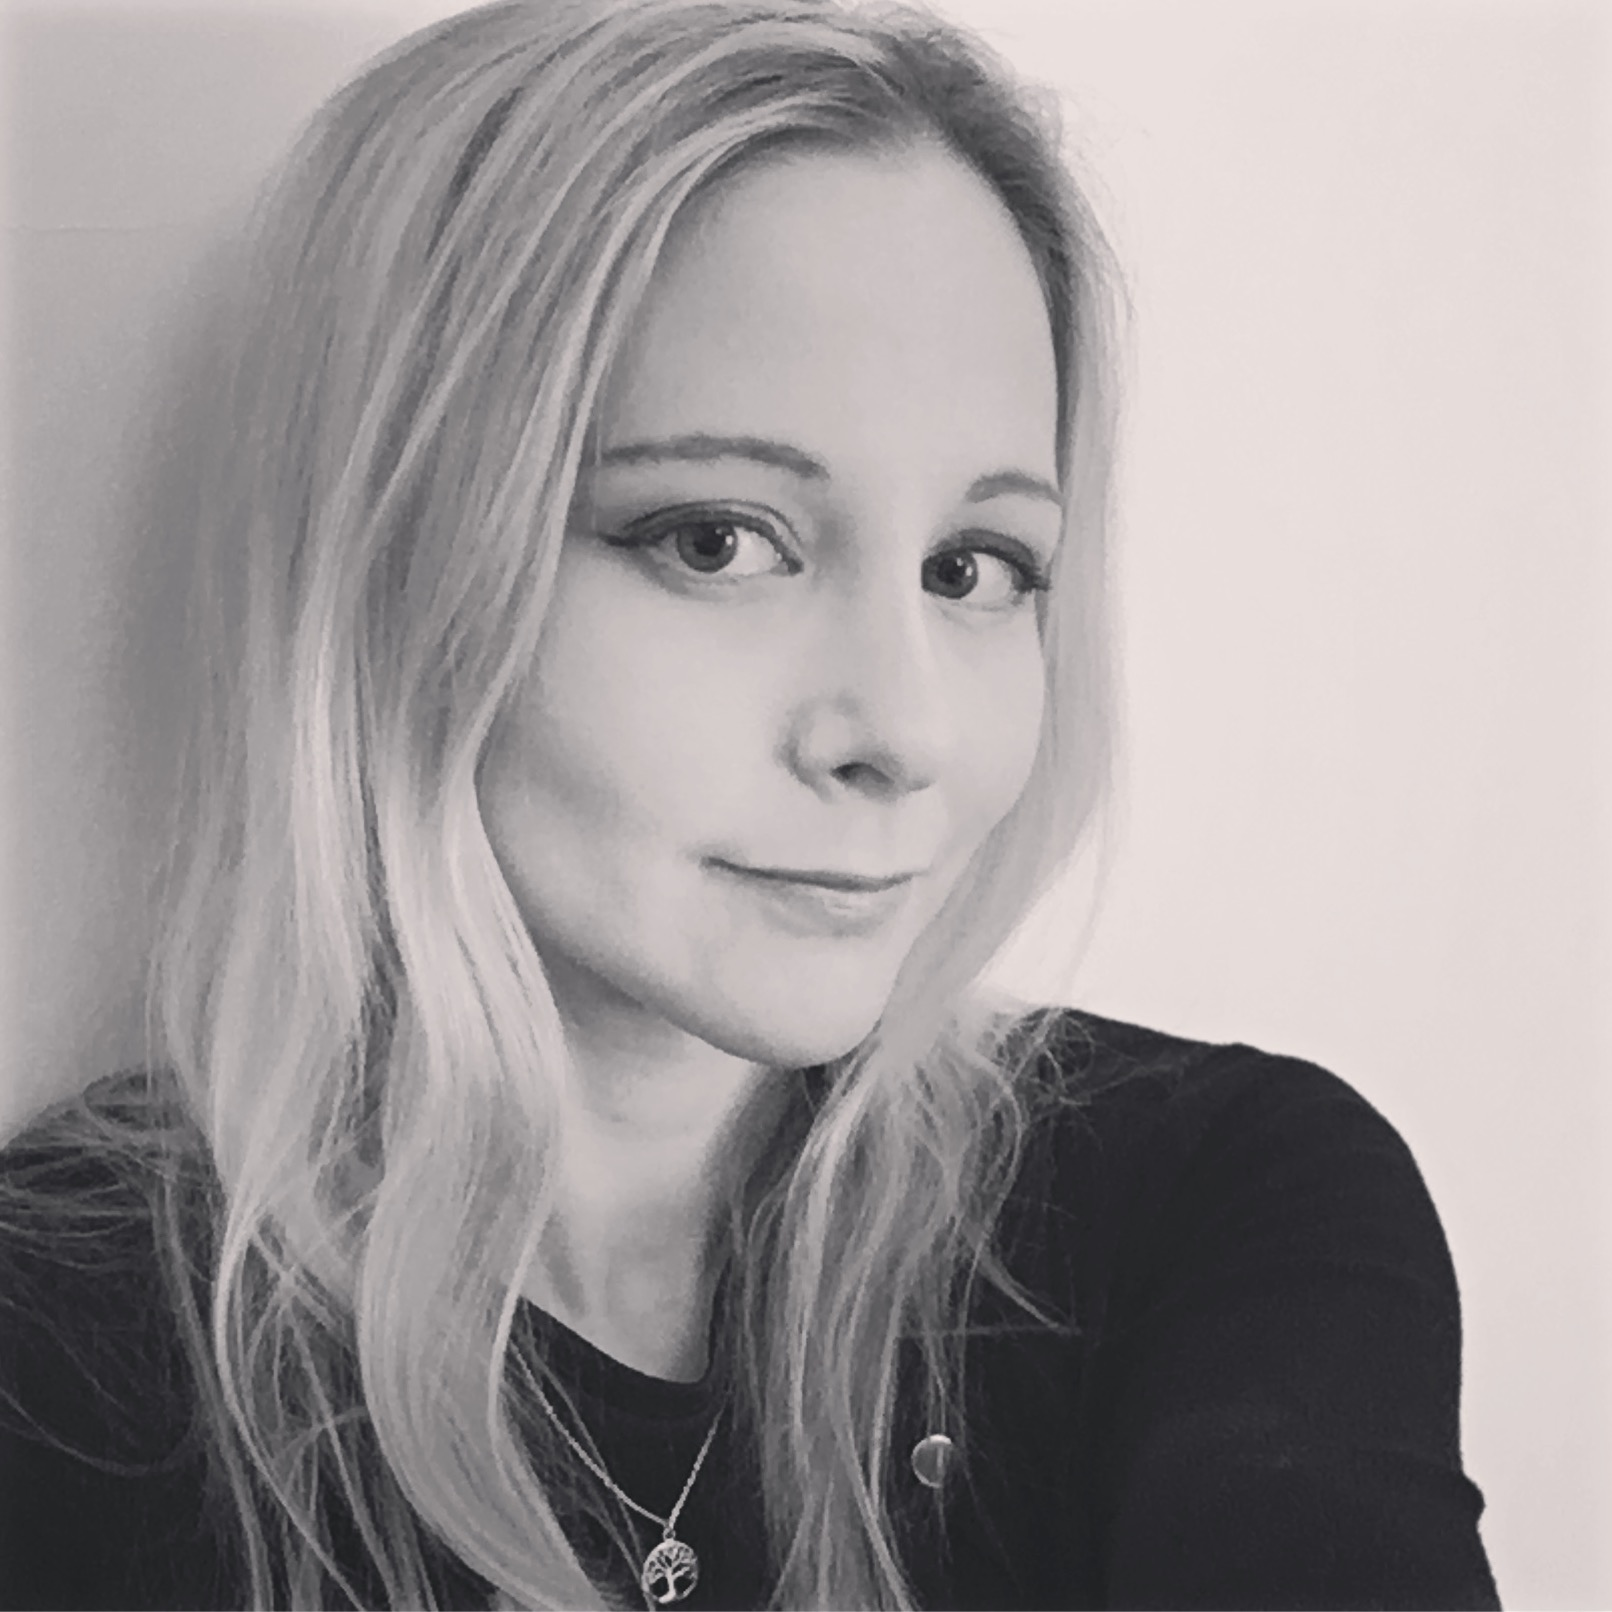 #281 Aimee Lewis  - Aimeehas a career that'll make you green with envy. She spent seven years thinking different at Apple - flying from London to LA and back again often faster than you can say